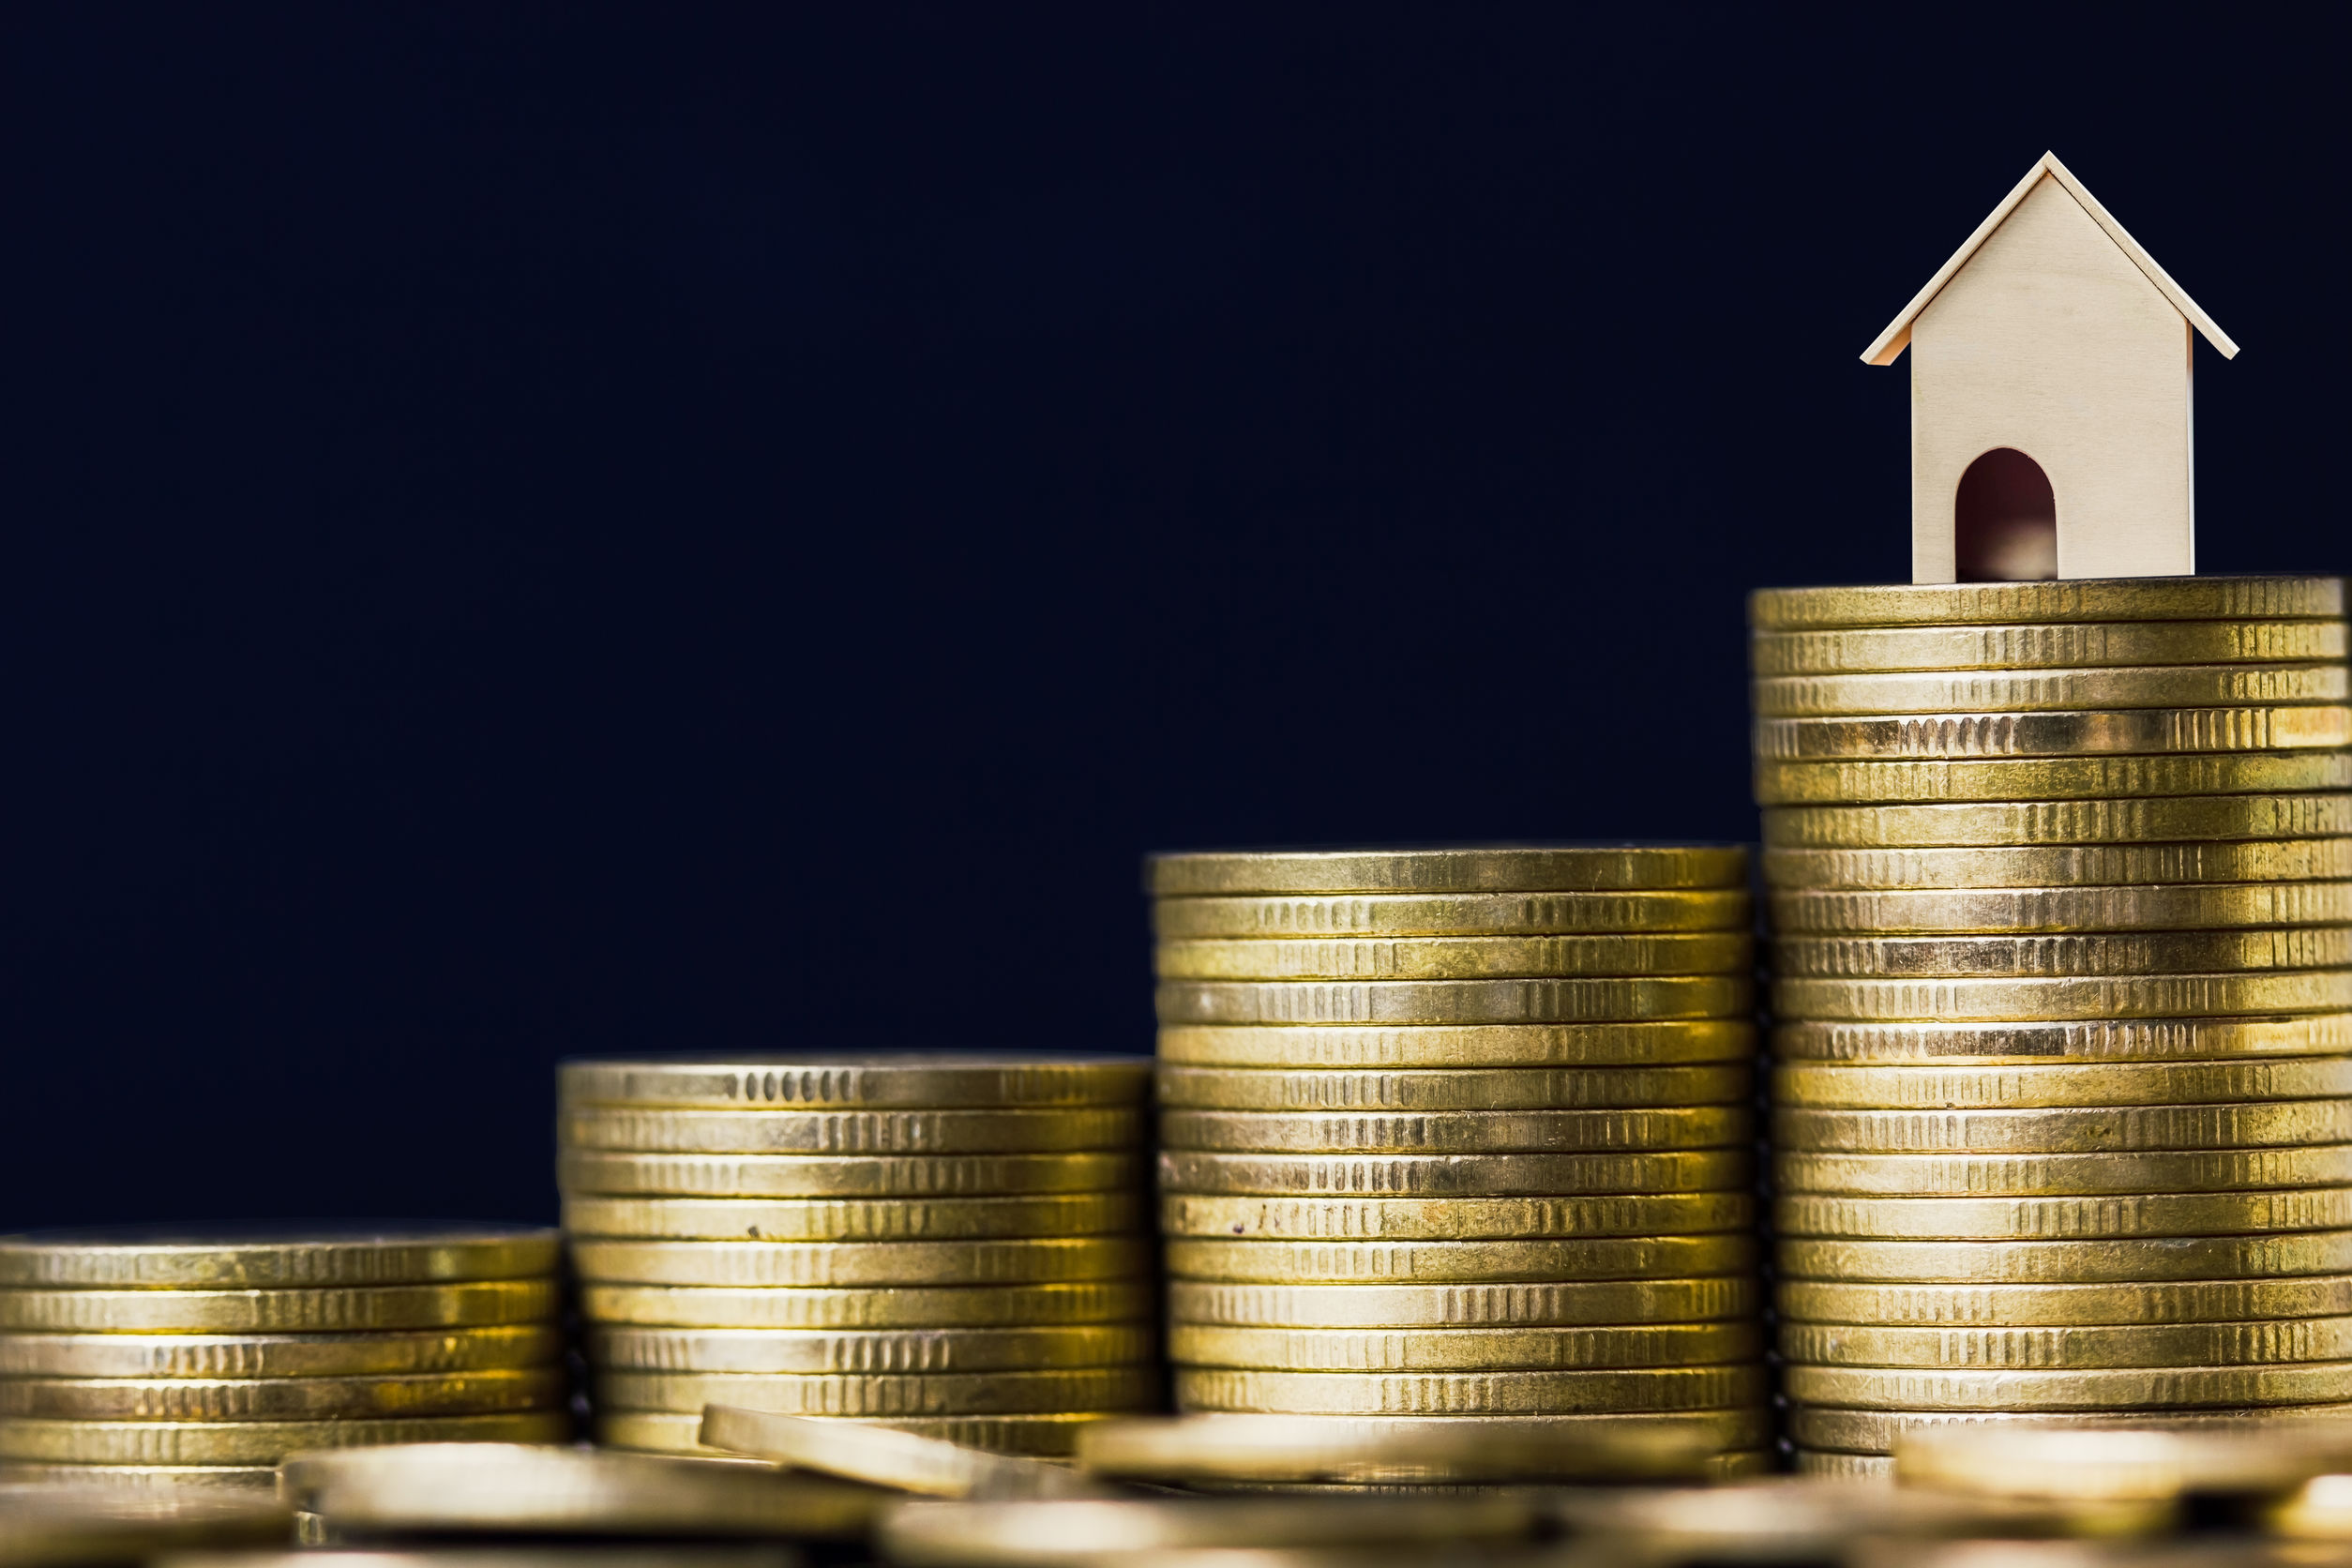 Home loan, mortgages, debt, savings money for home buying concep